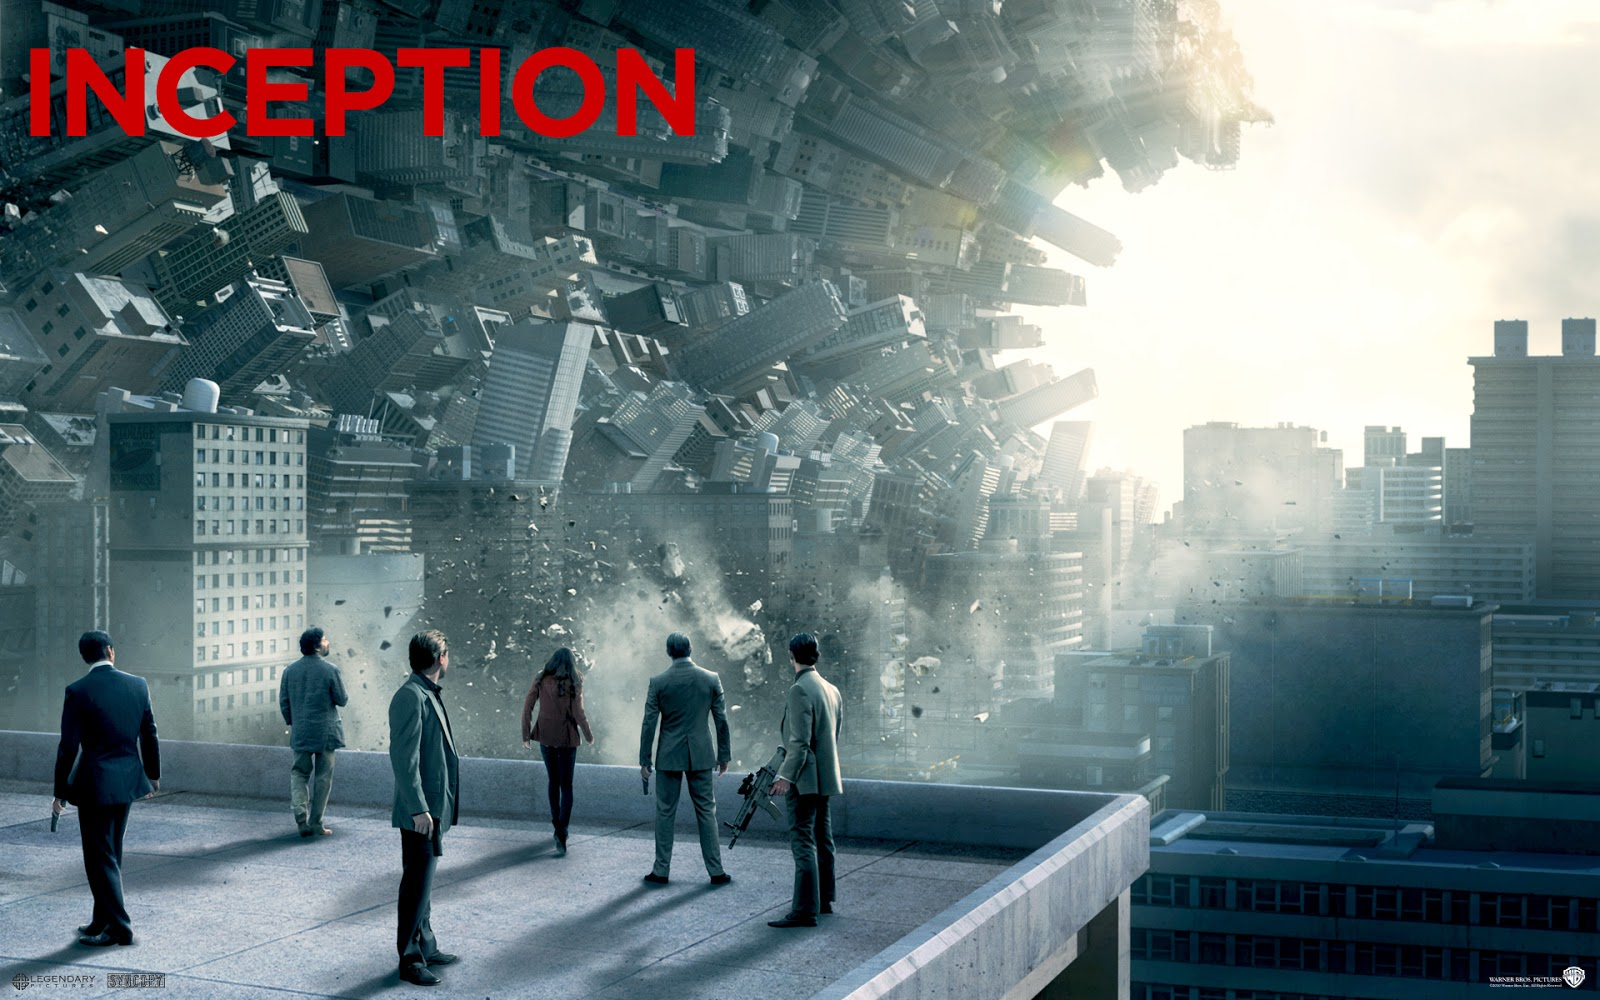 http://1.bp.blogspot.com/-ymadT2UZZNQ/UH1IdrABRwI/AAAAAAAAPgE/fT1I3NtThTE/s1600/Inception-Widescreen-Wallpaper-1920x1200-2.jpg